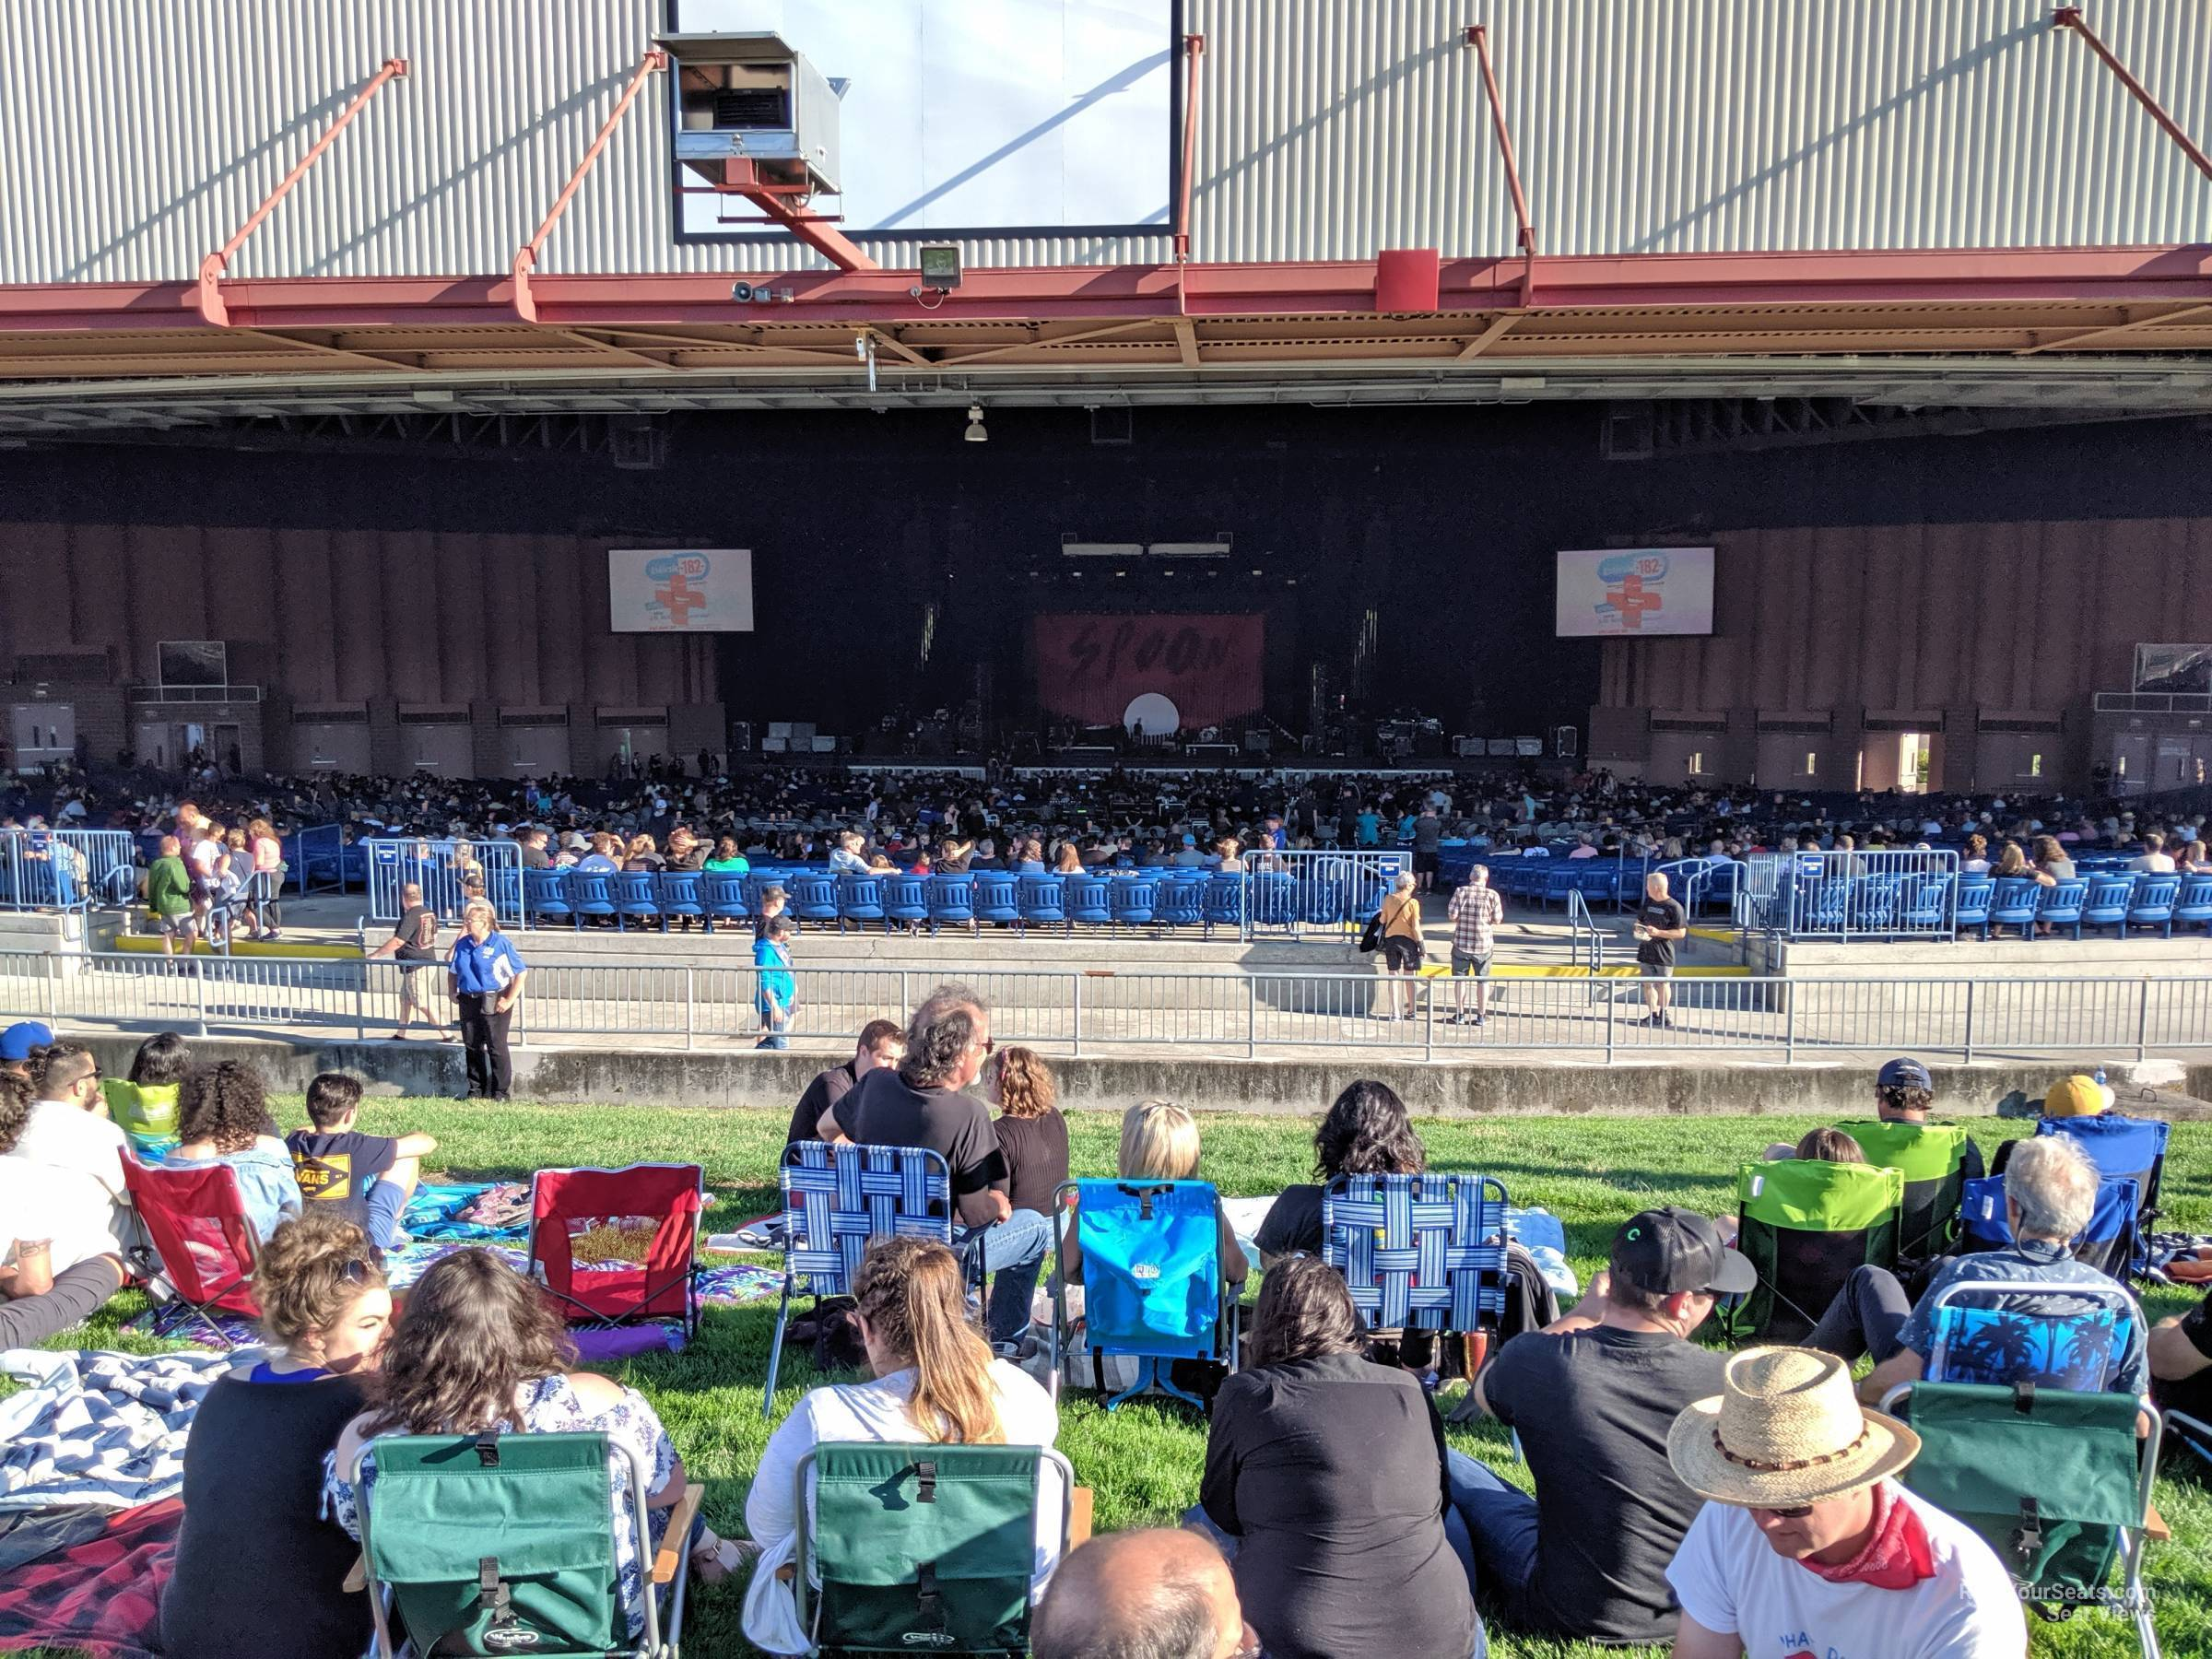 Concert Seat View for Sunlight Supply Amphitheater Lawn